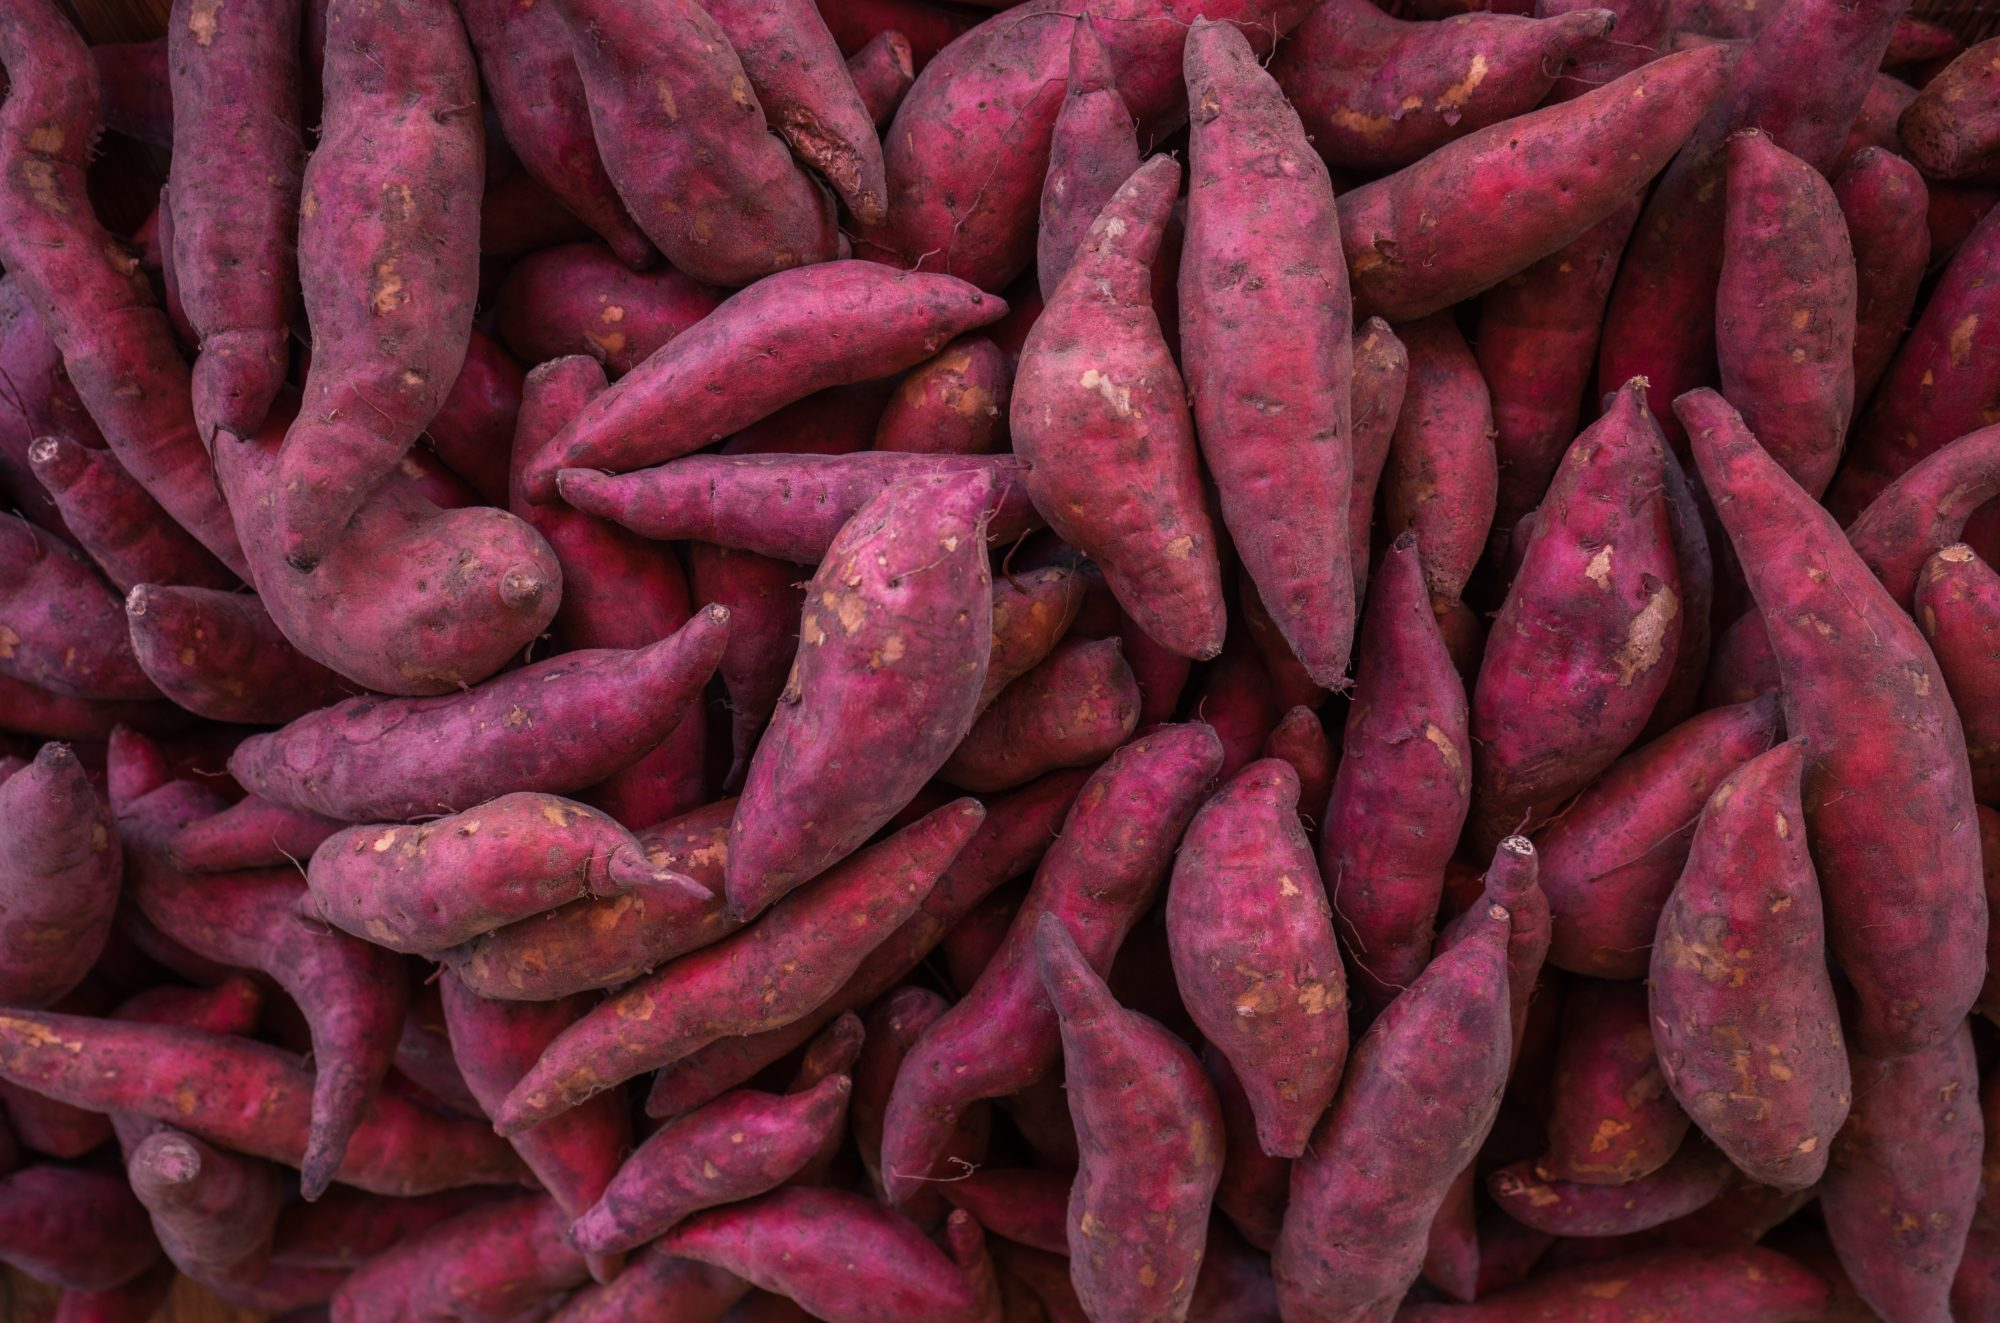 Sweet Potatoes vs. Yams, and 11 Other Food Pairs You Probably Confuse